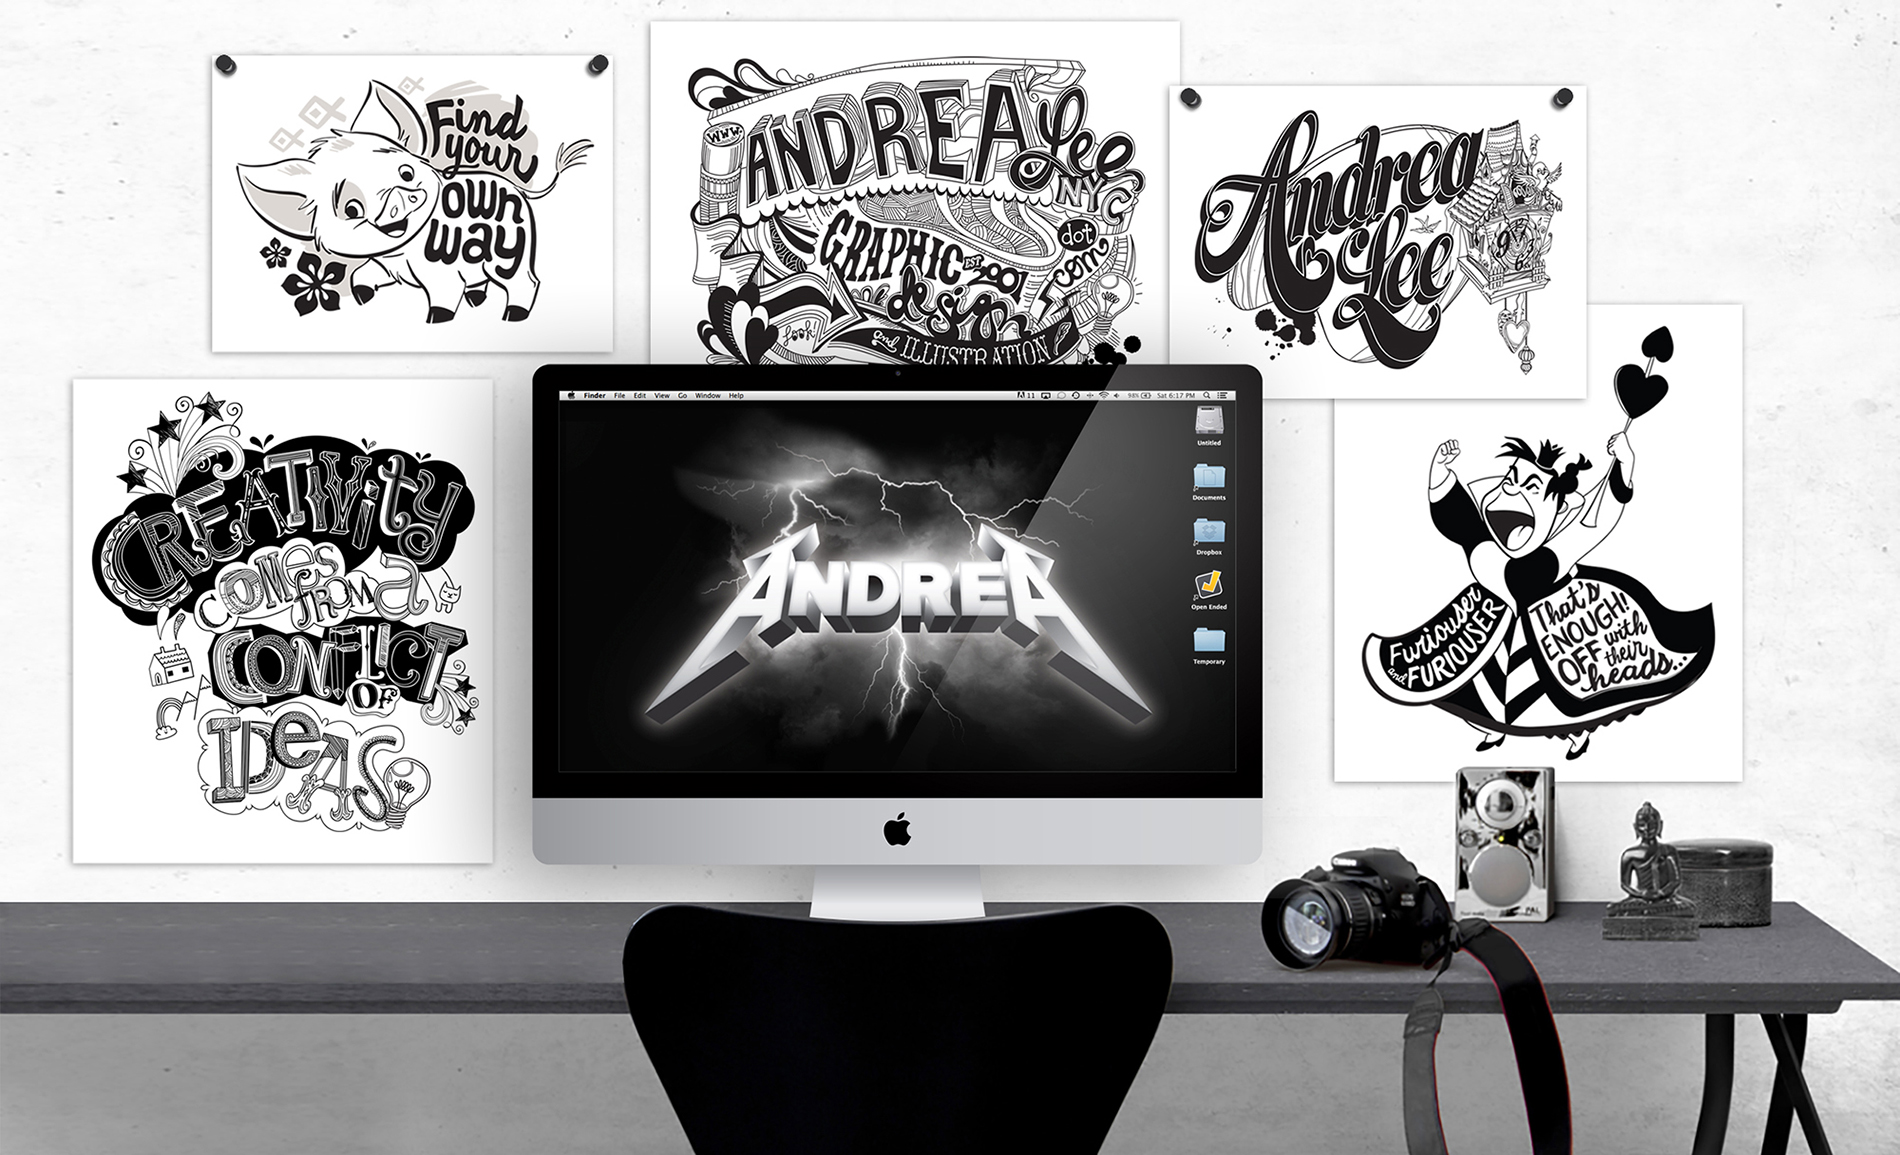 Various graphics and hand-drawn type